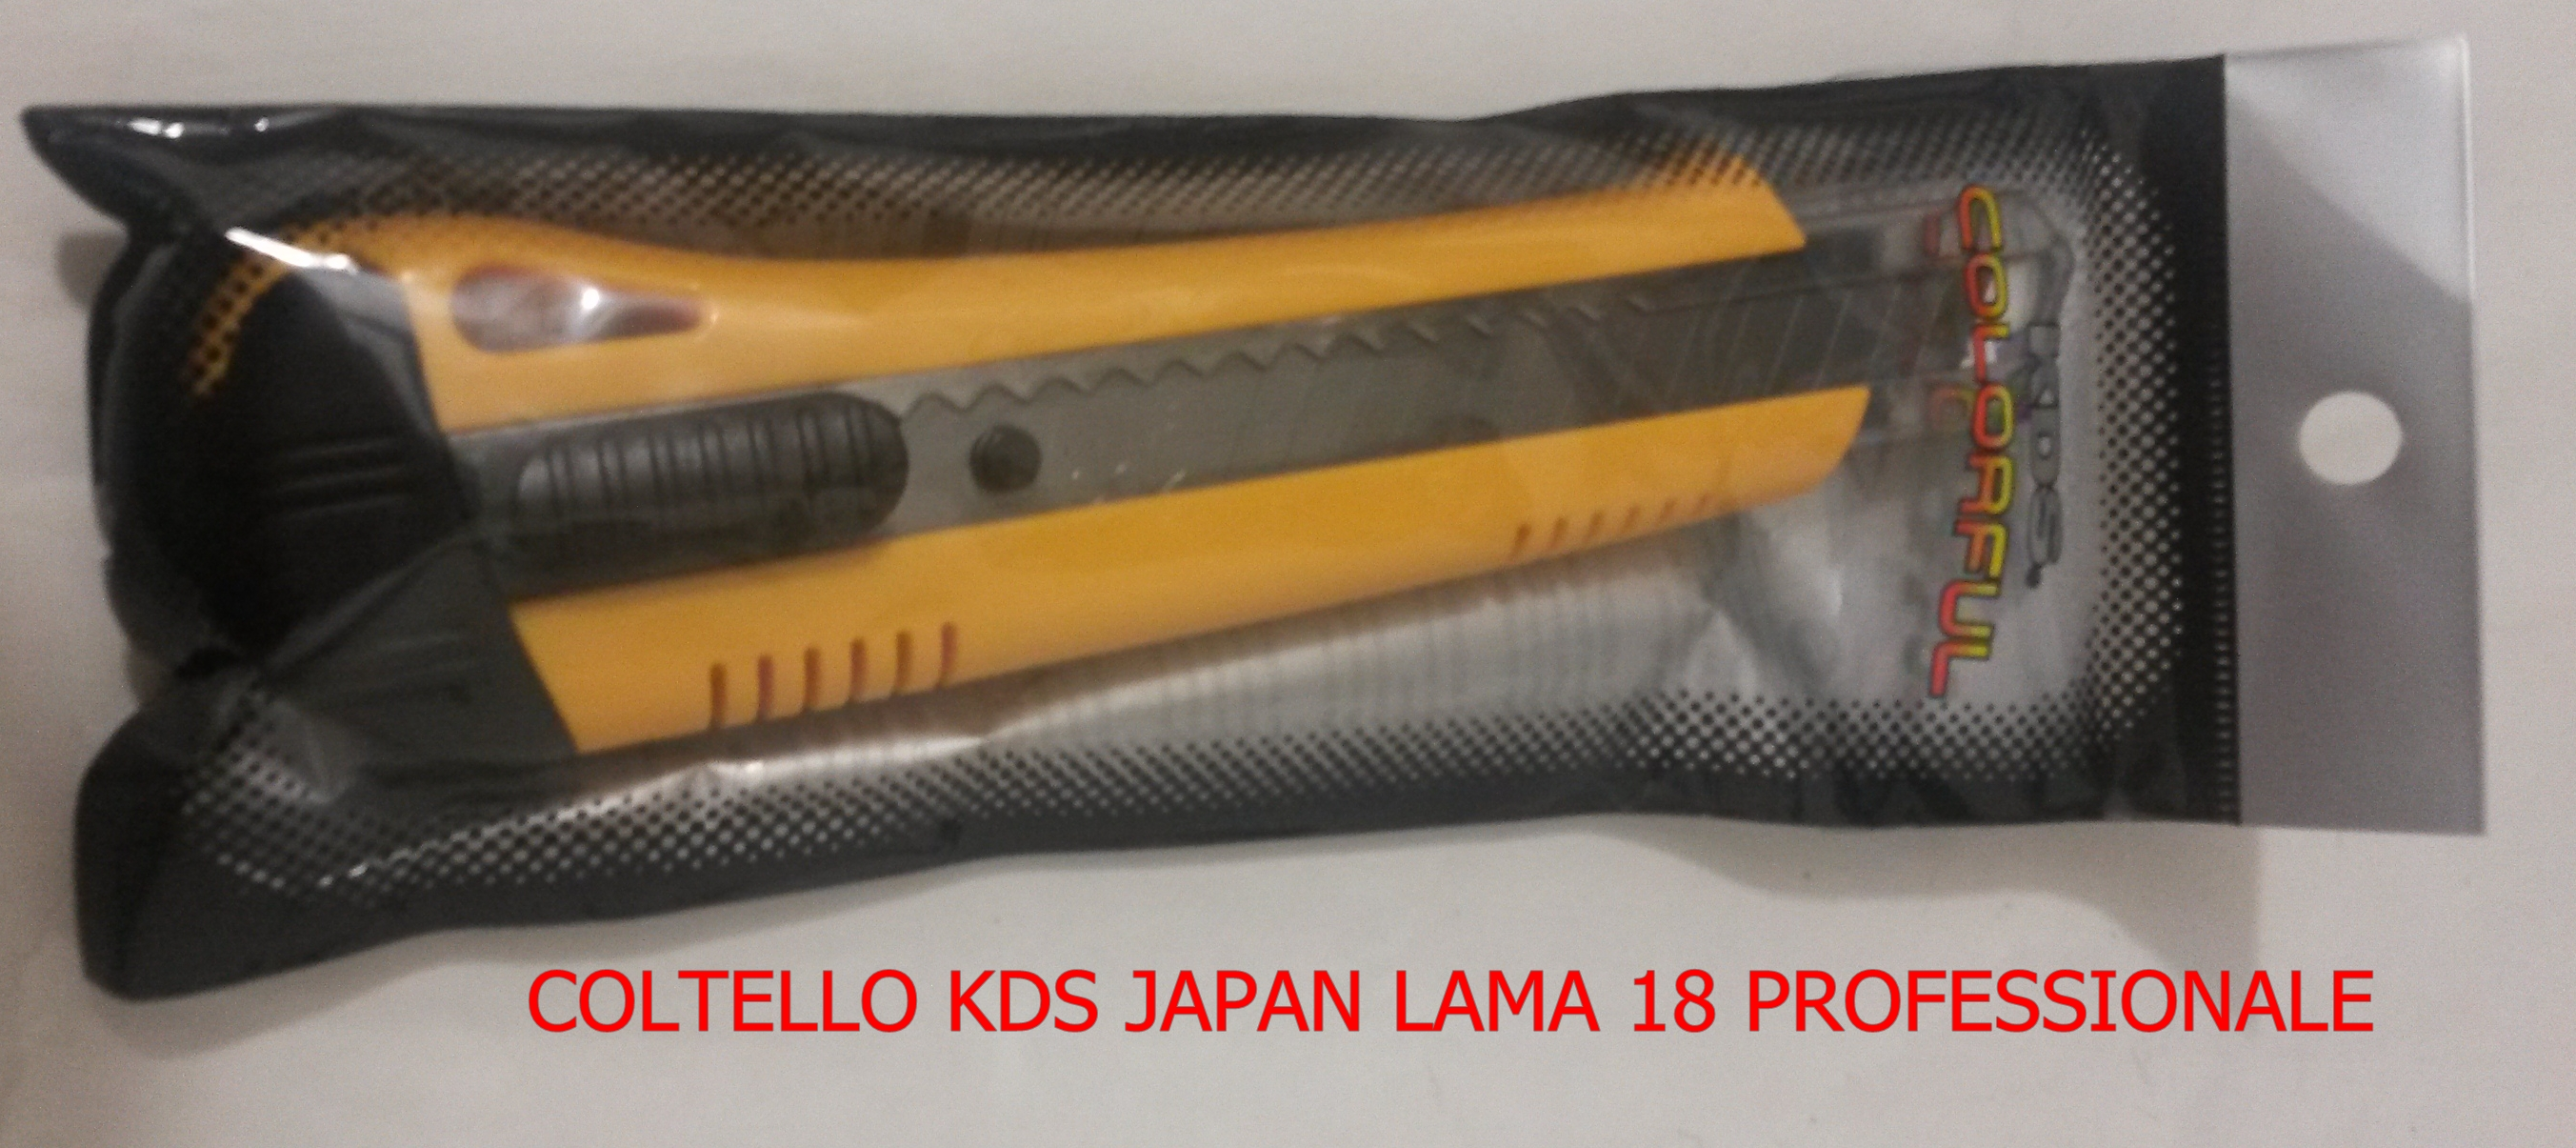 COLTELLO KDS JAPAN LAMA 18